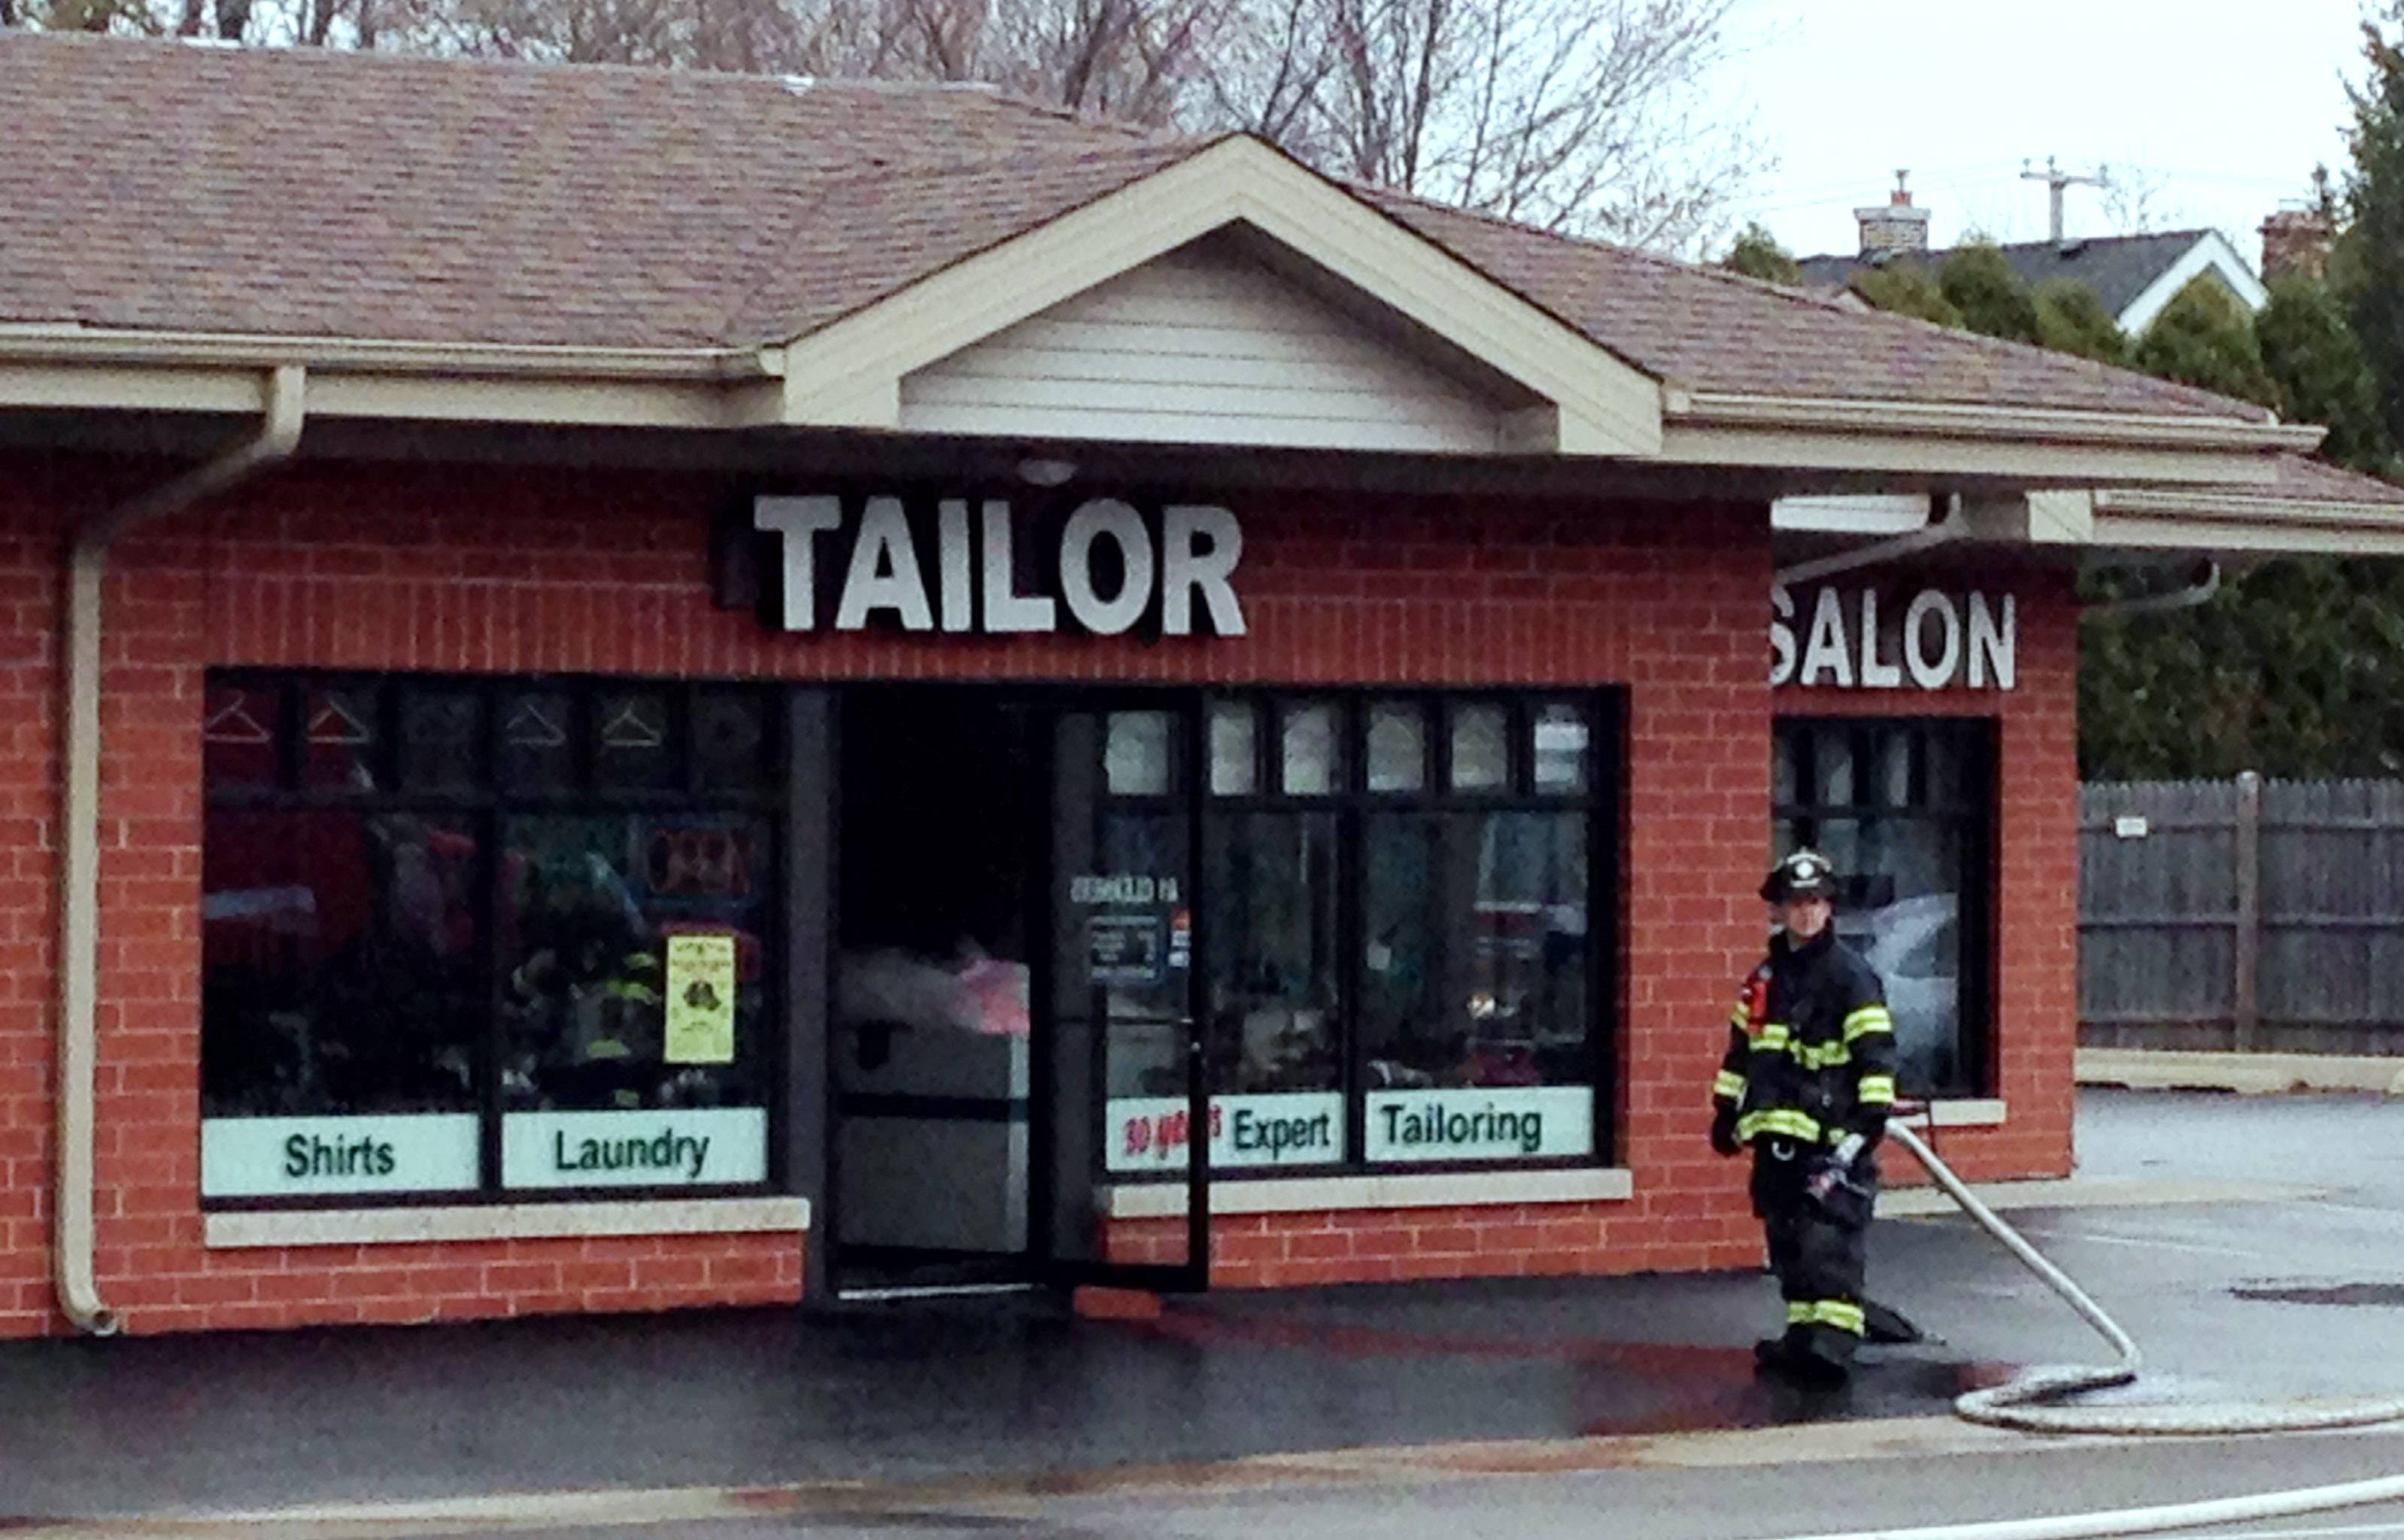 An employee at A1 Cleaners on Route 120 in Grayslake remains hospitalized from burns suffered in a chemical and steam explosion from an equipment malfunction there Thursday afternoon, authorities said.